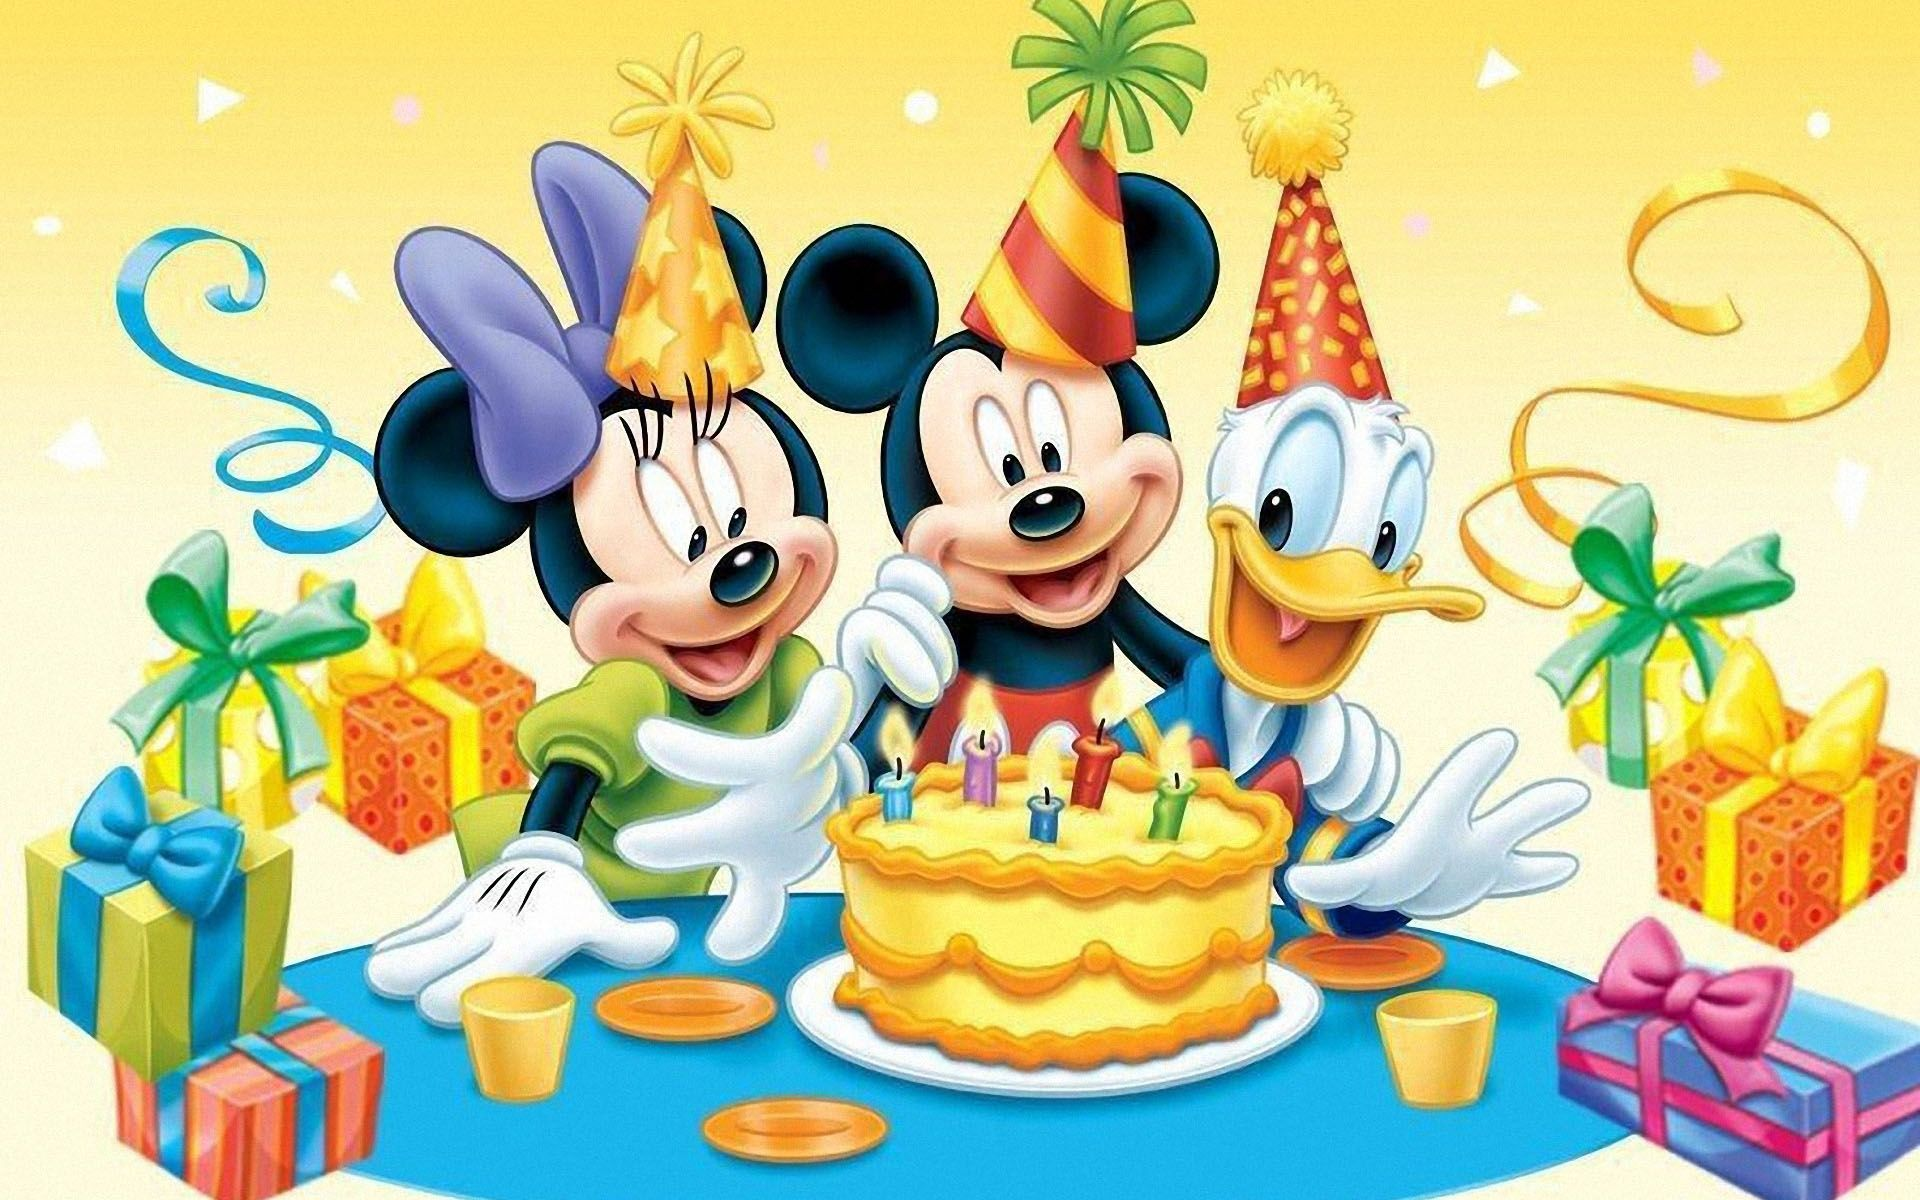 Mickey Mouse Hd Wallpapers Backgrounds Wallpaper 1920x1200